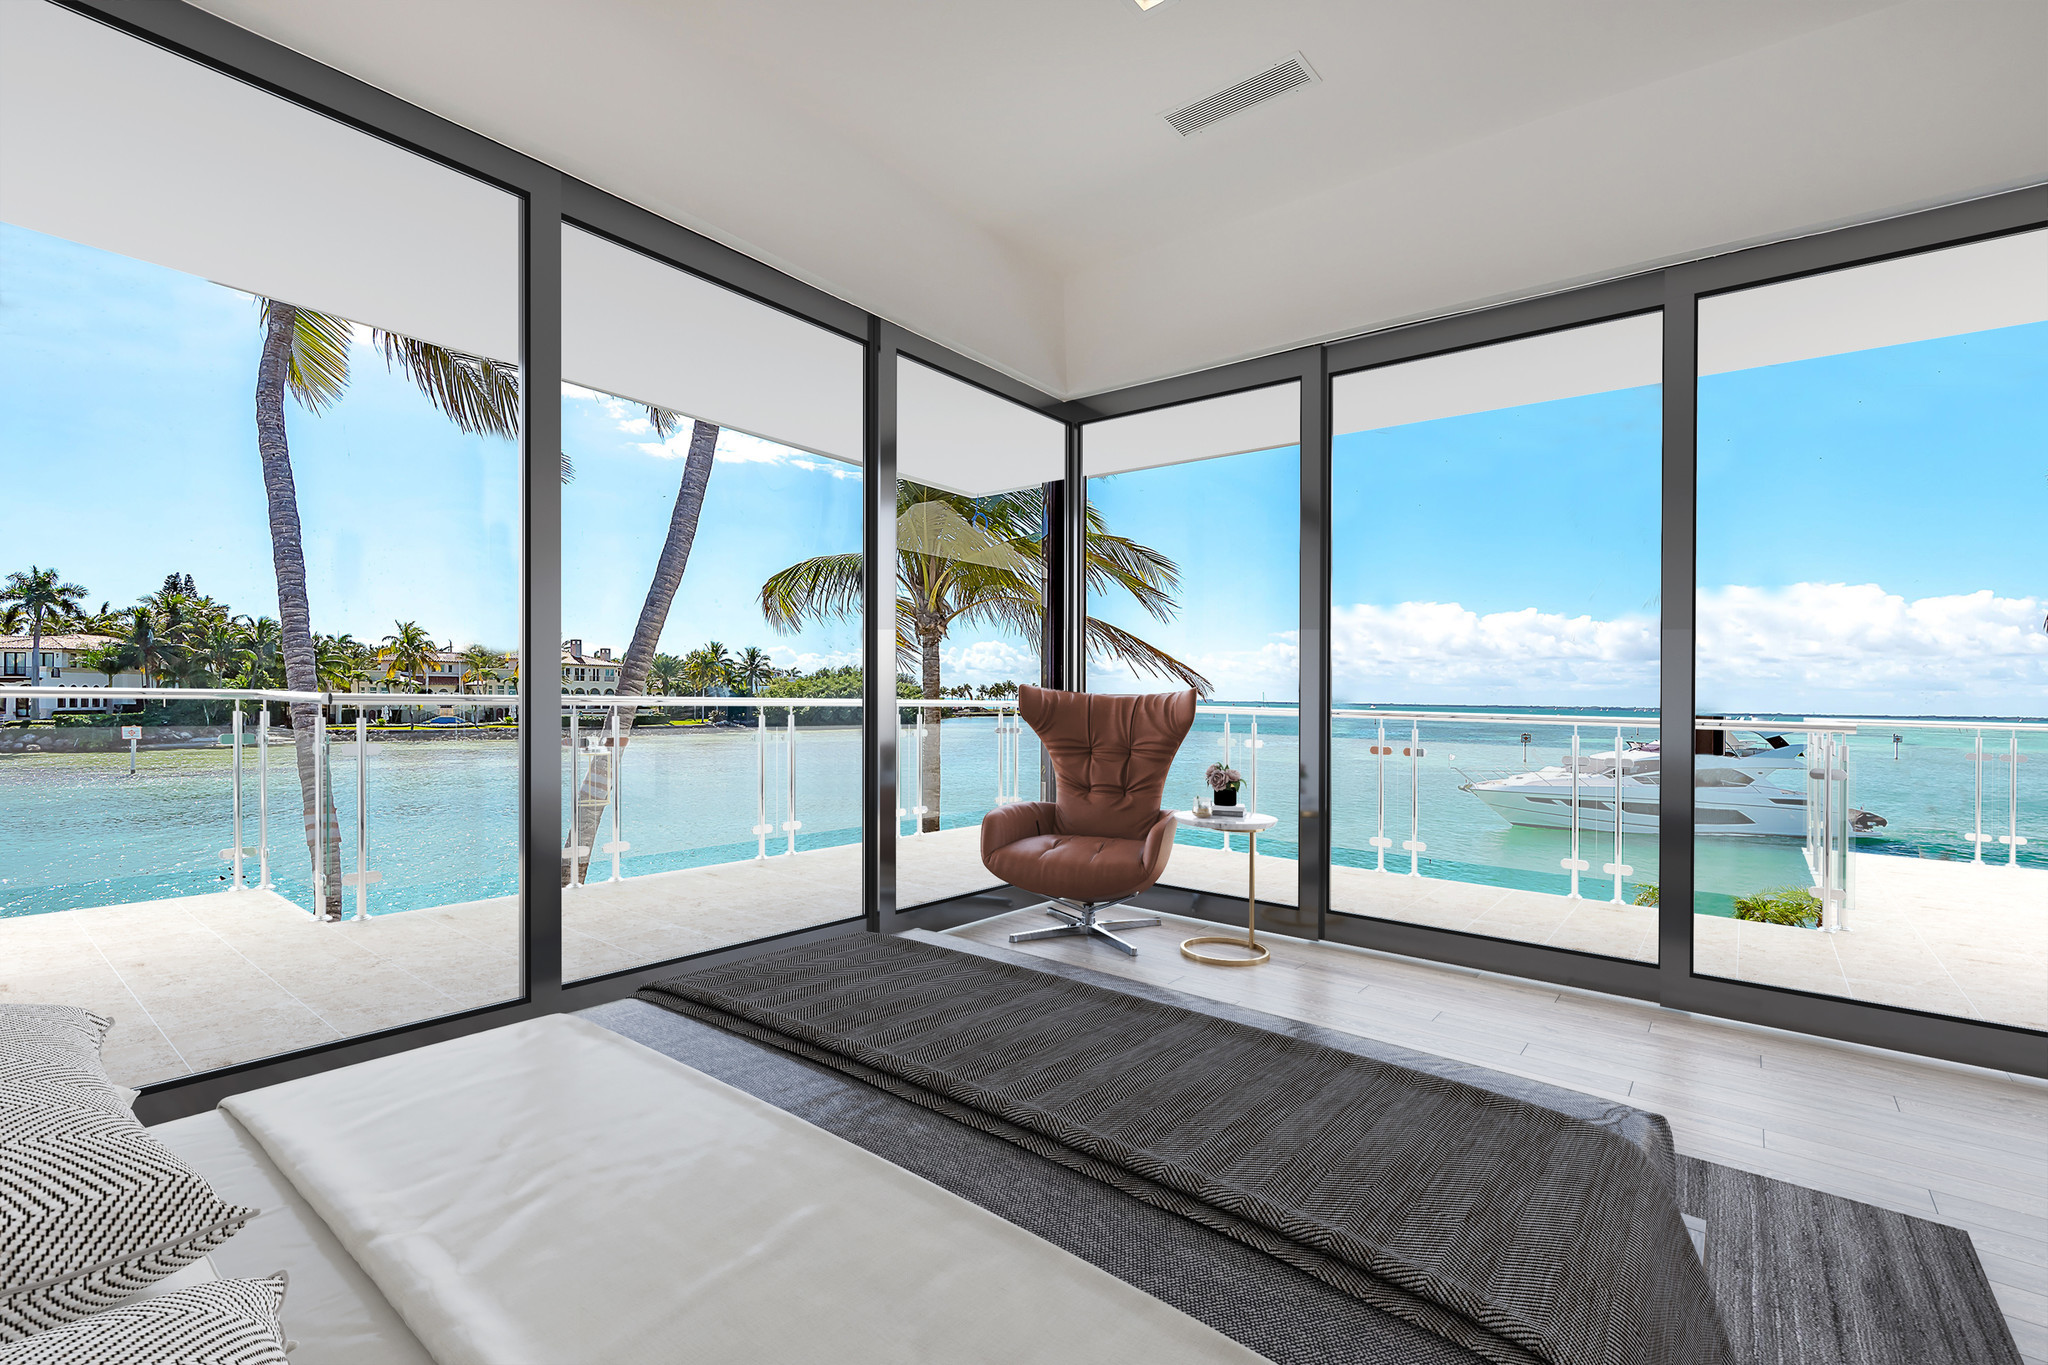 $25 million Key Biscayne dream home might really float your boat